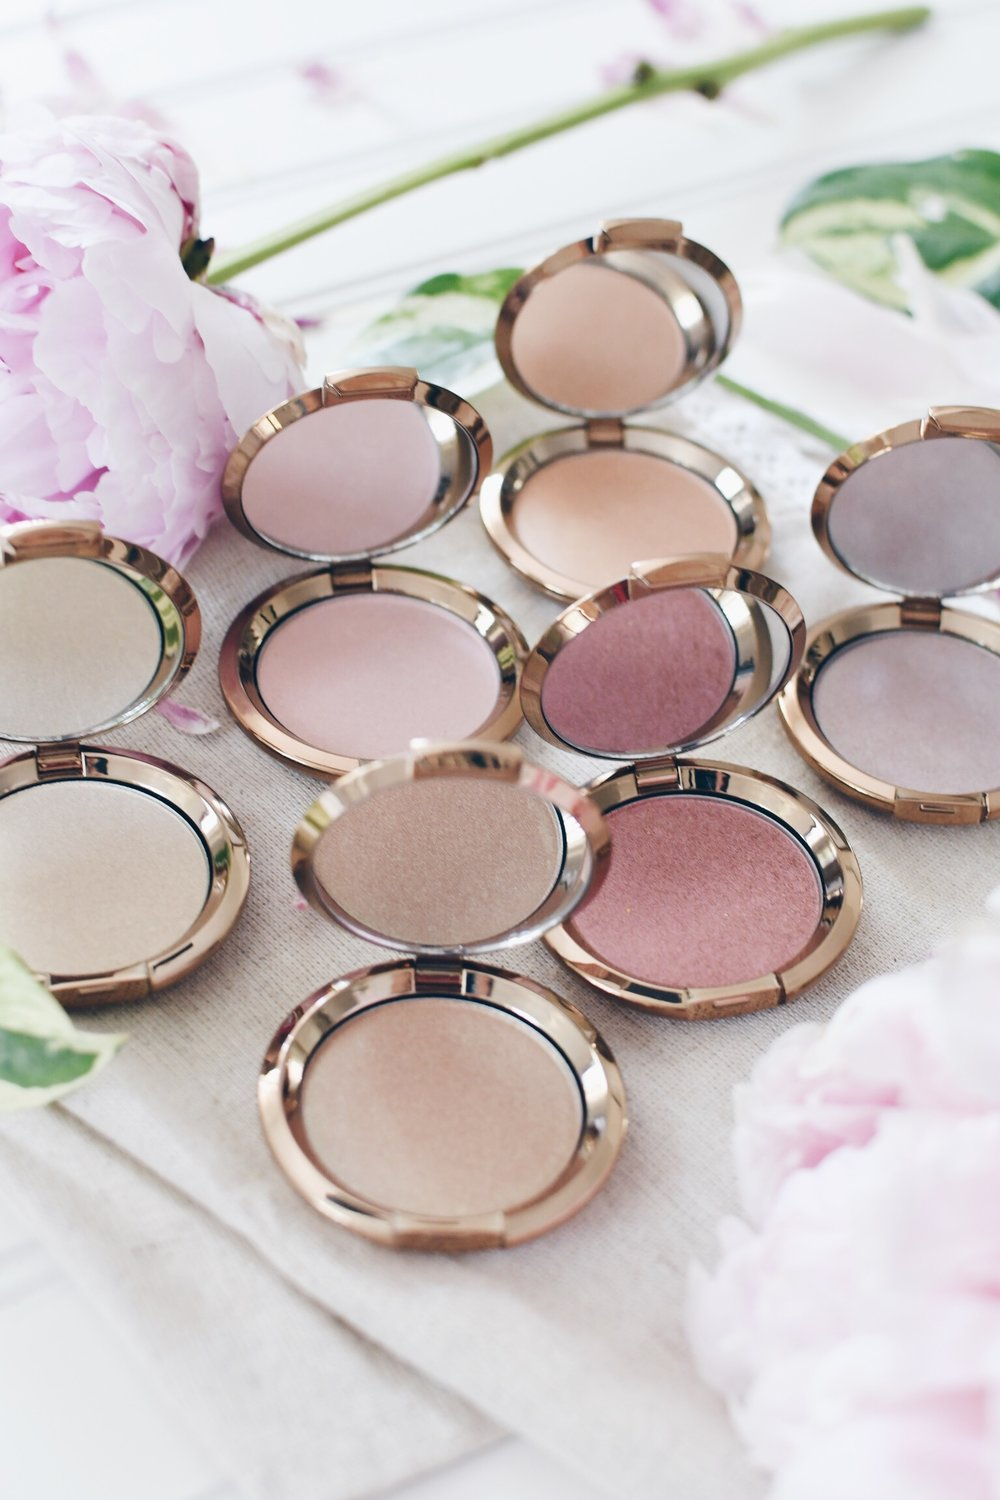 Becca Cosmetics Light Chaser Highlighter Collection